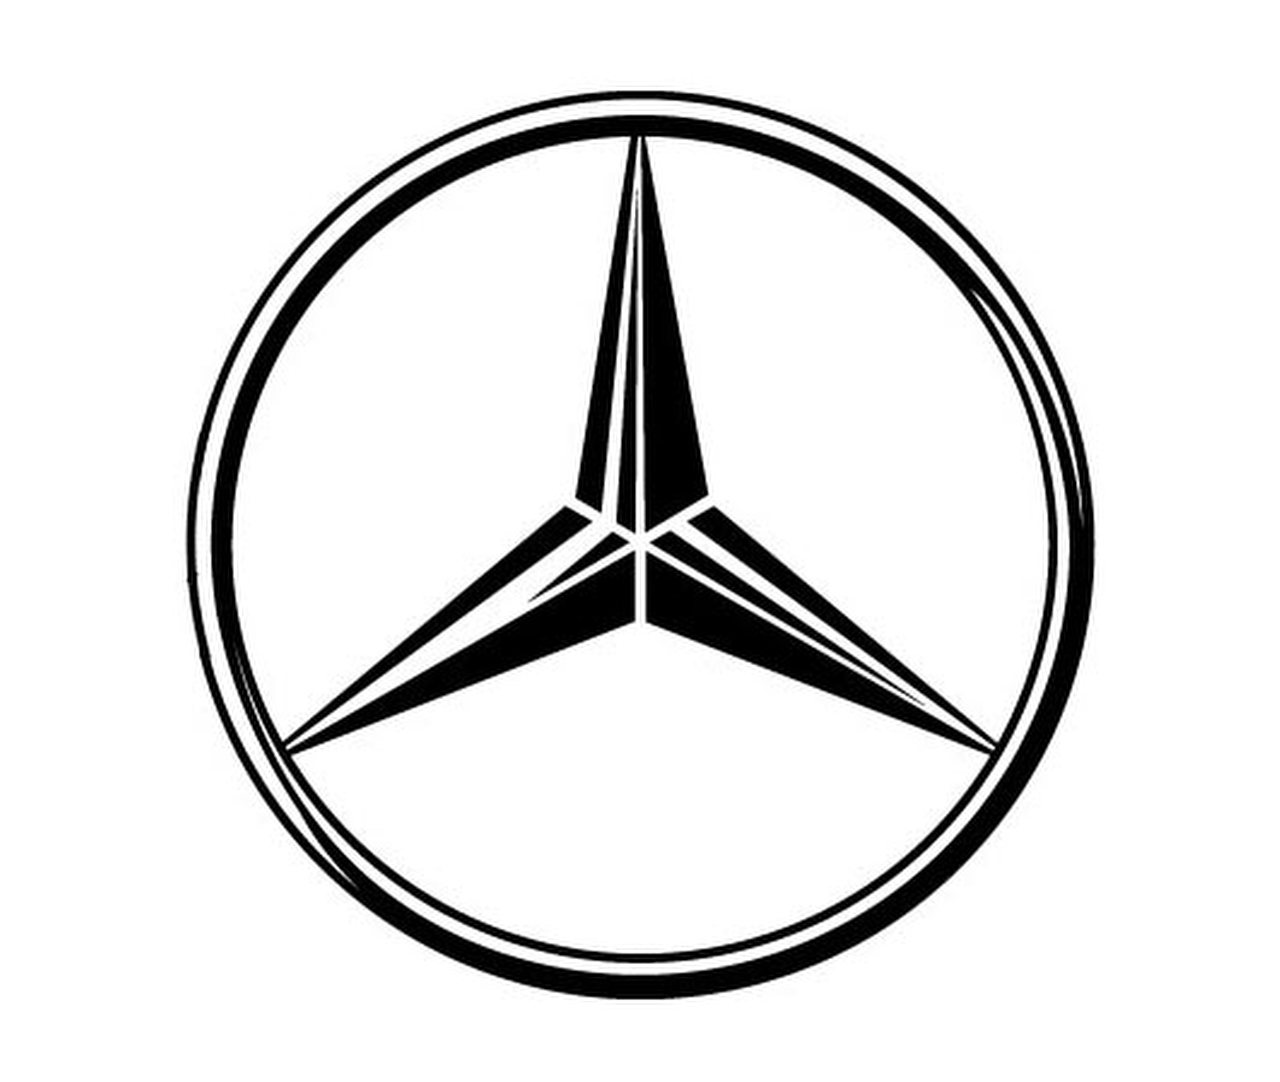 Benz mercedes sign for Mercedes benz sign in